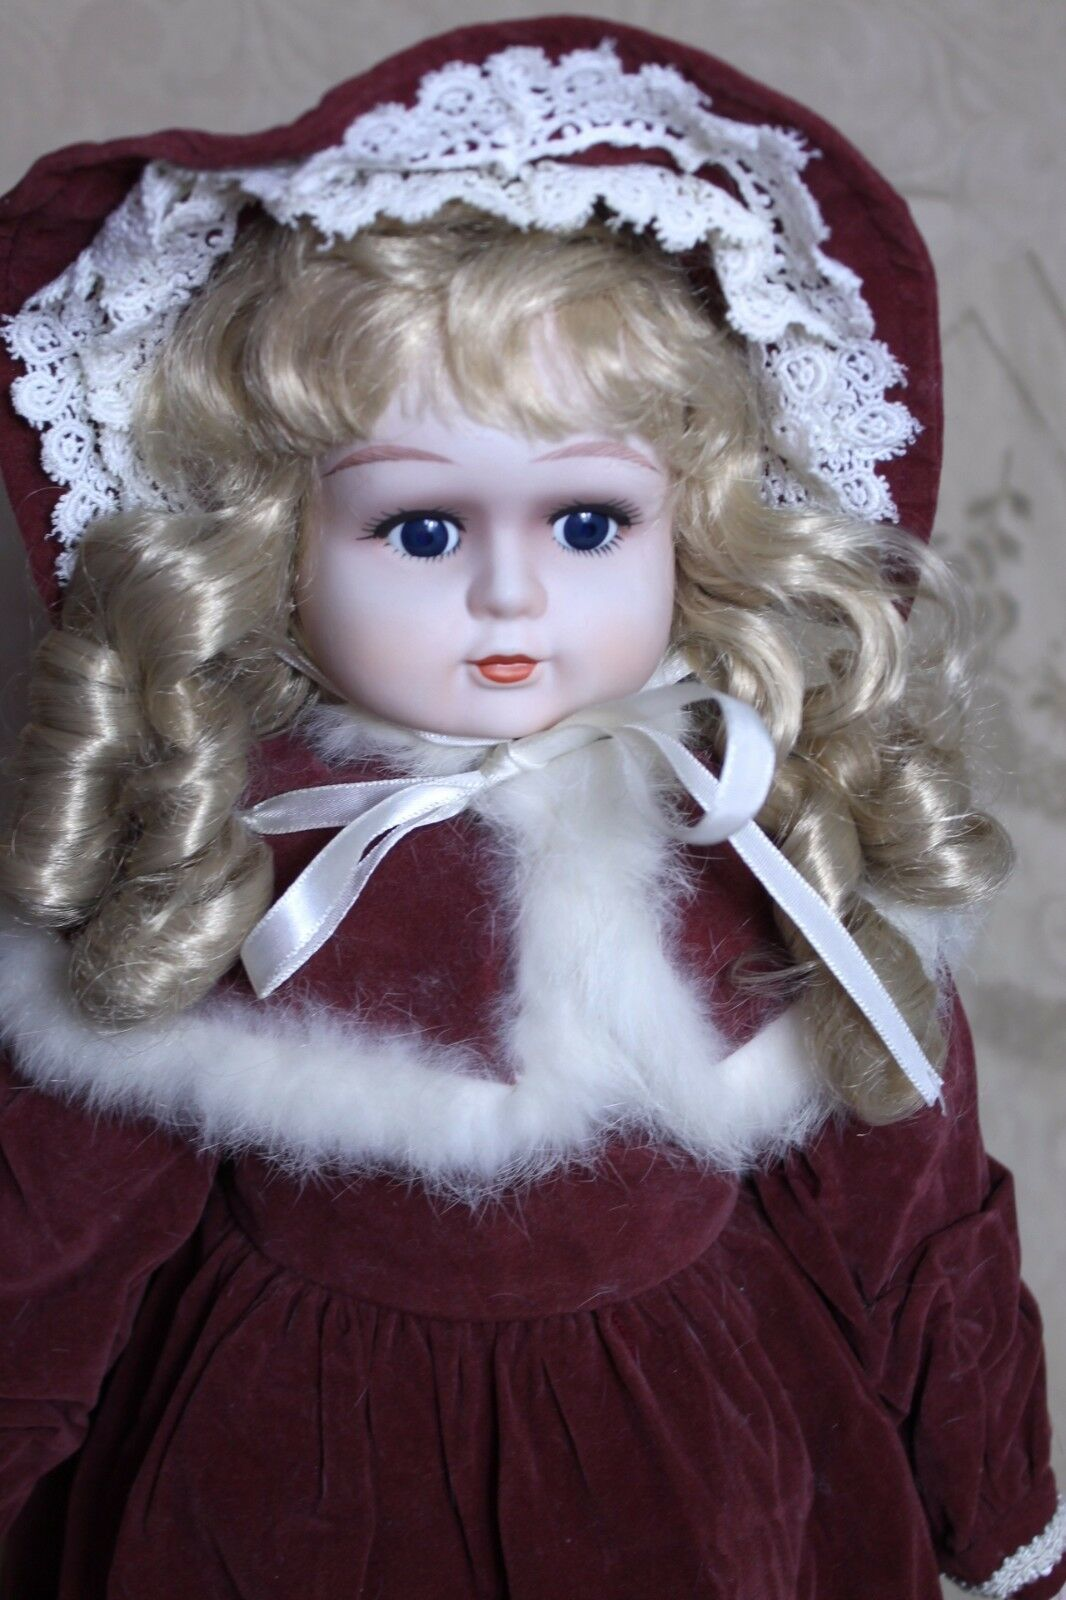 Large Victorian Style Doll Porcelain Face Dress Hands Feet 22-24